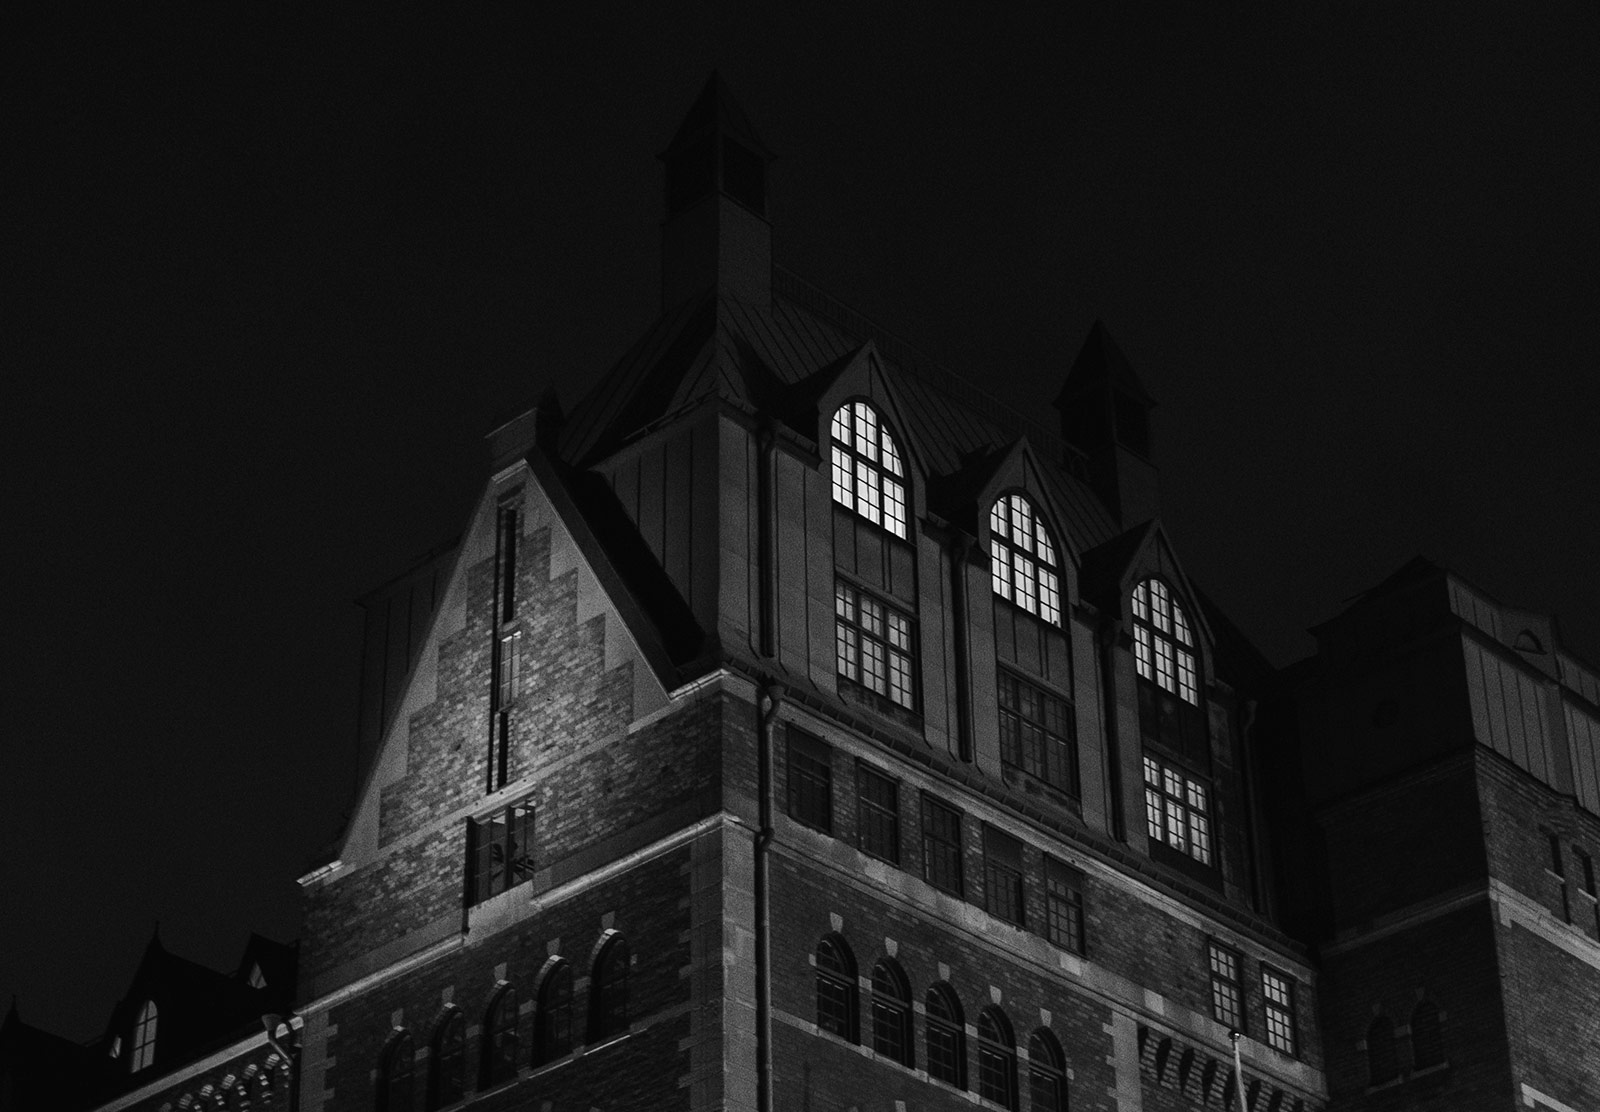 Creepy building at night